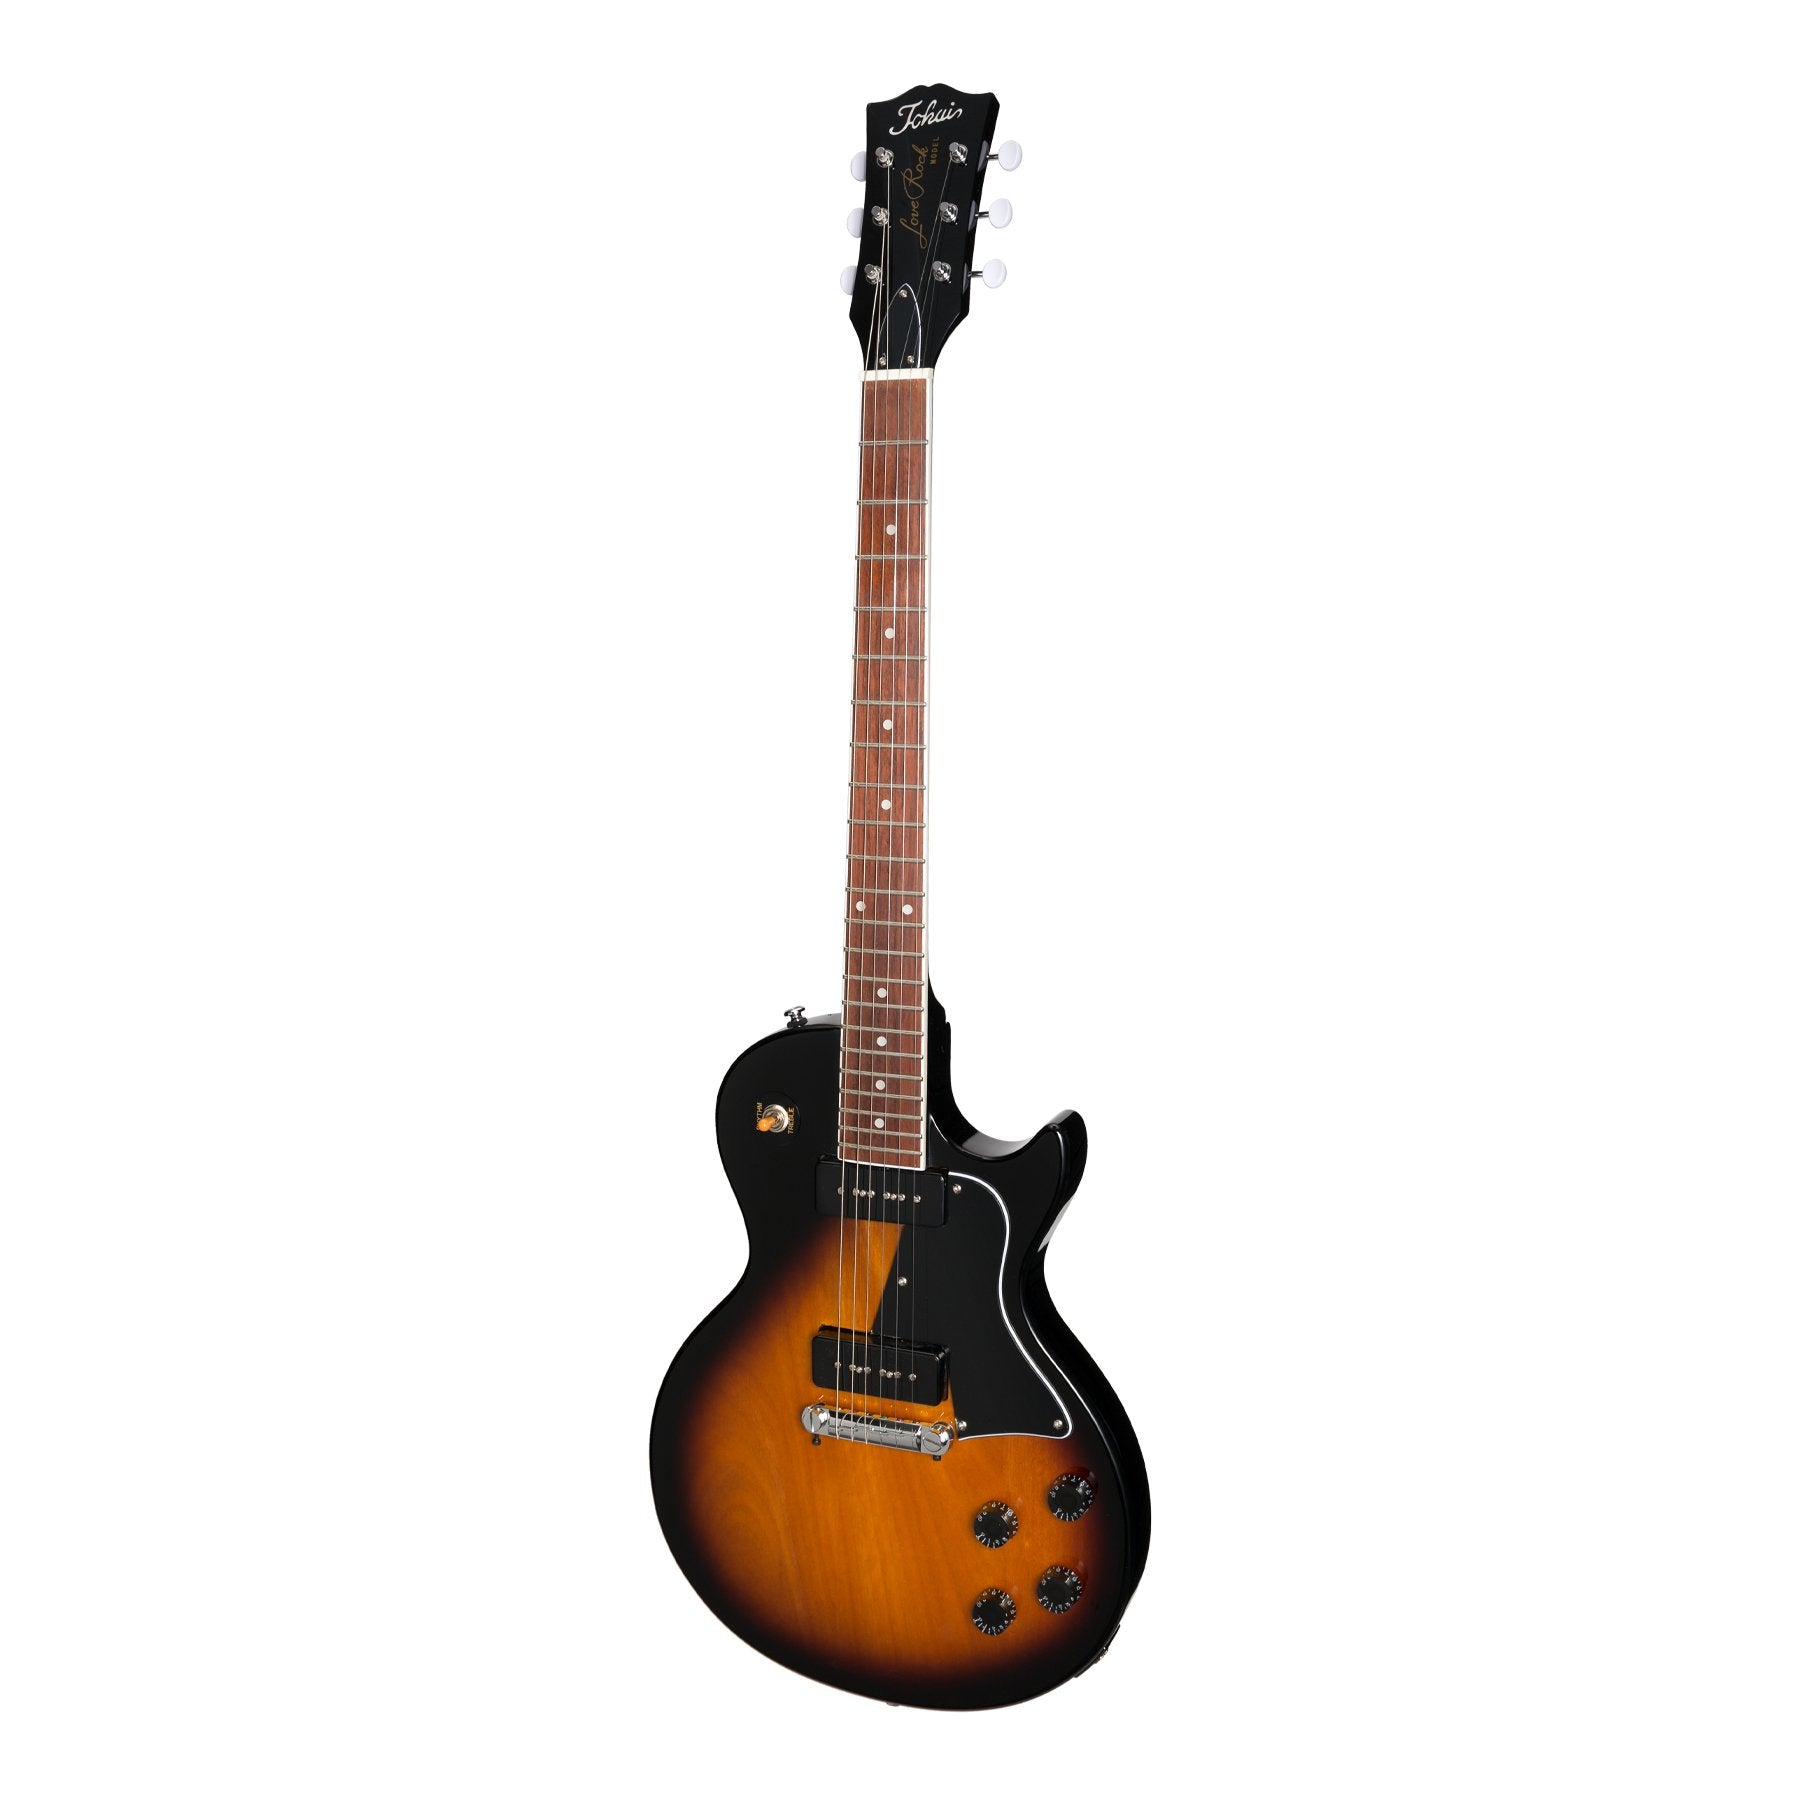 Tokai 'Traditional Series' LSS-58 LP-Special Style Electric Guitar (Sunburst)-LSS-58-SB